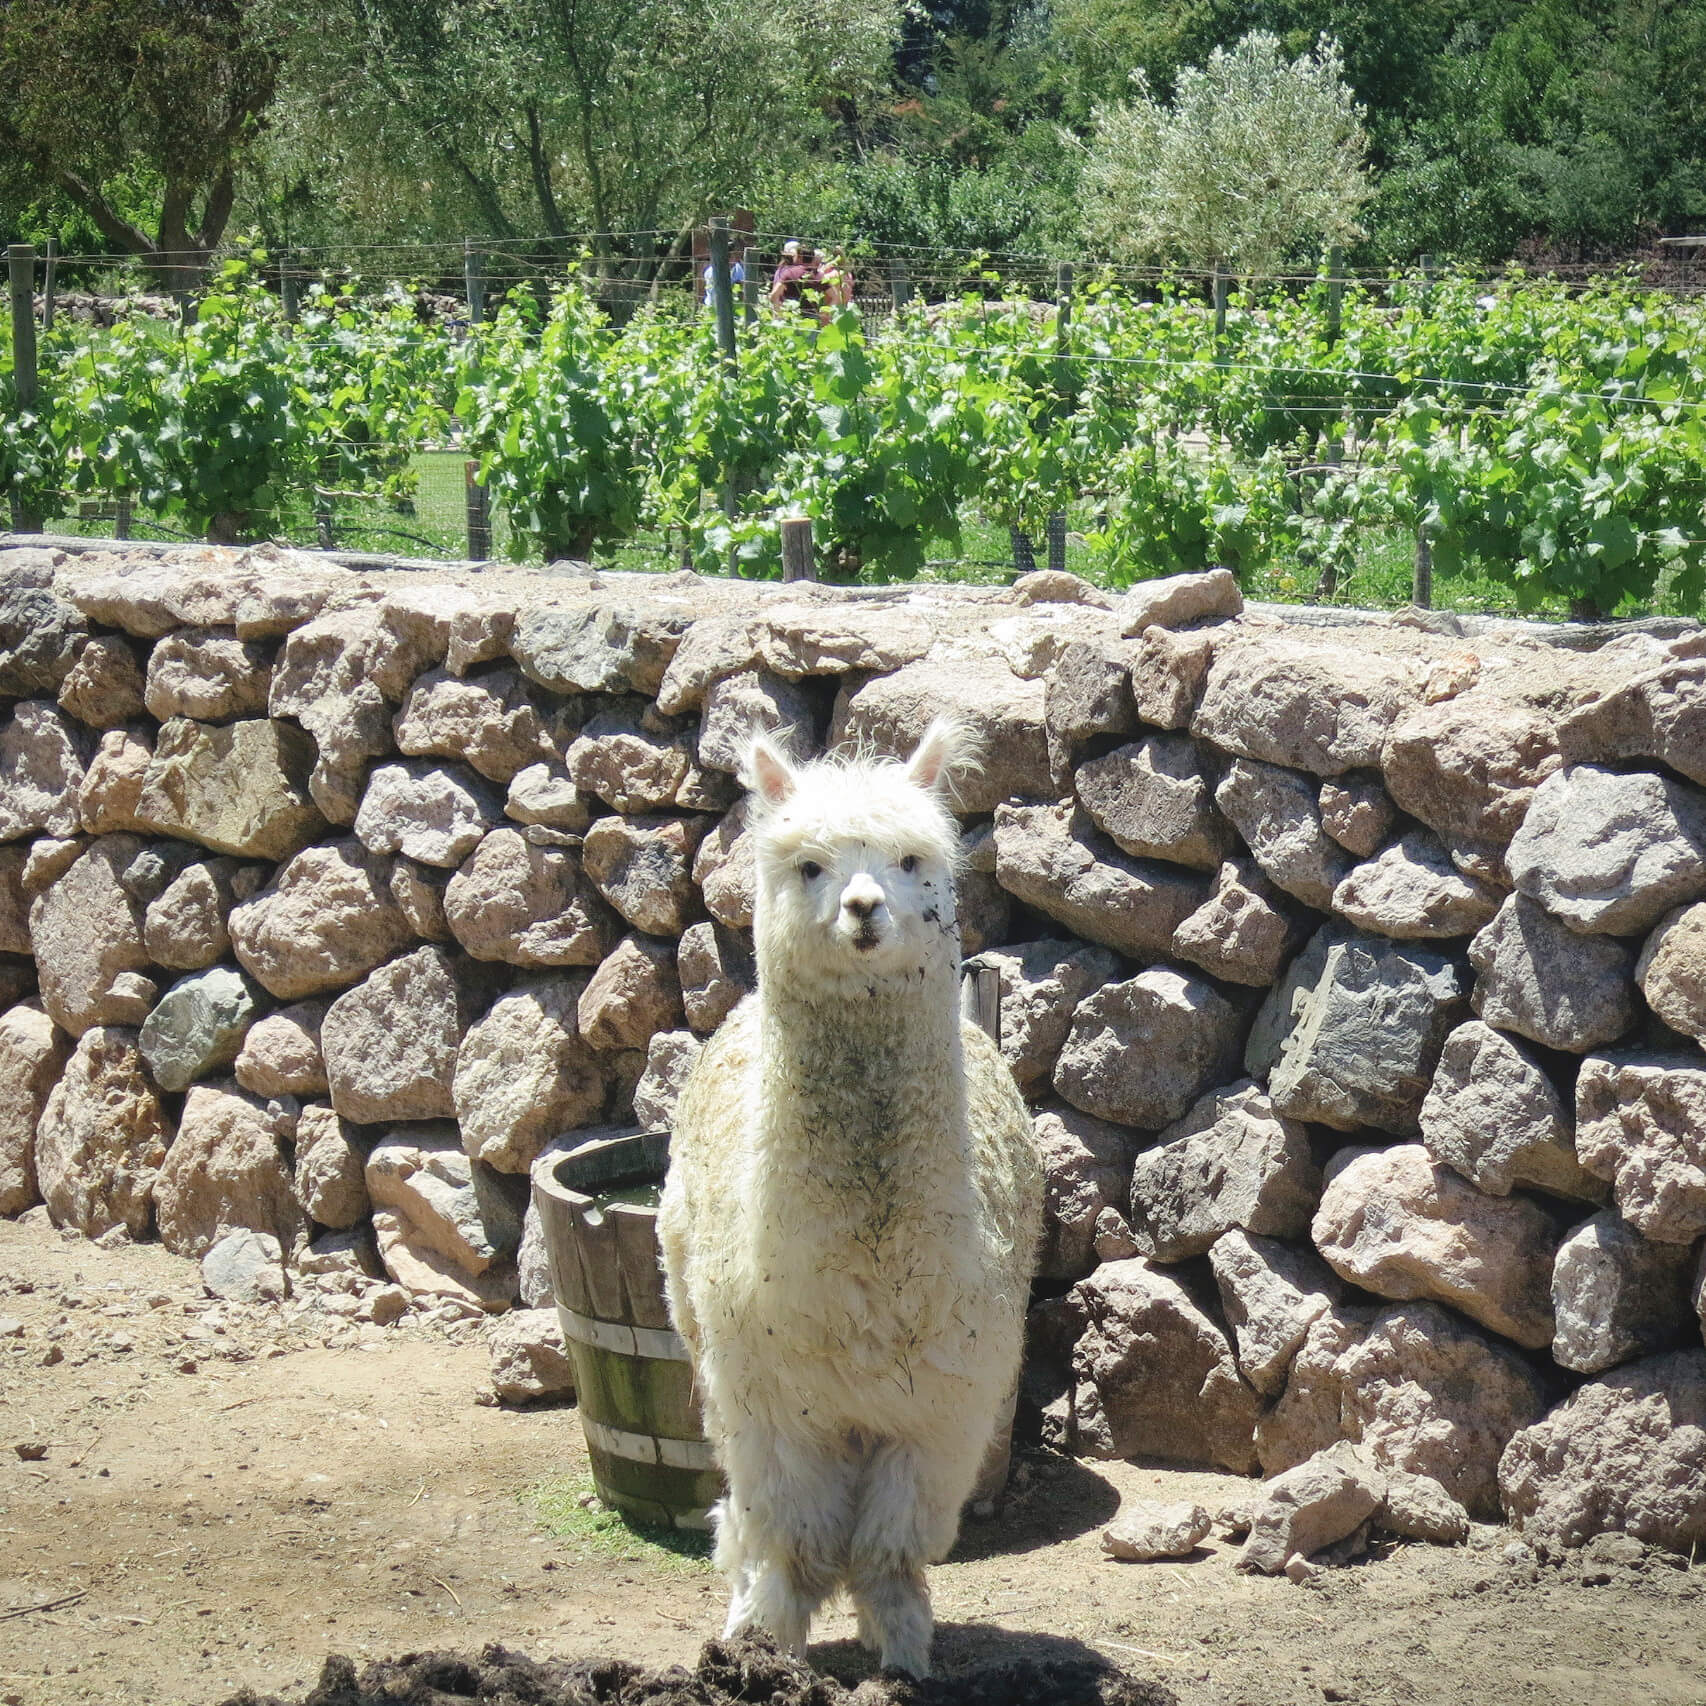 An adorable alpaca, one of the many resident animals at Emiliana Organic Vineyards in Casablanca Wine Region! We visited Emiliana Organic Vineyards to go wine tasting in Valparaiso without a tour.